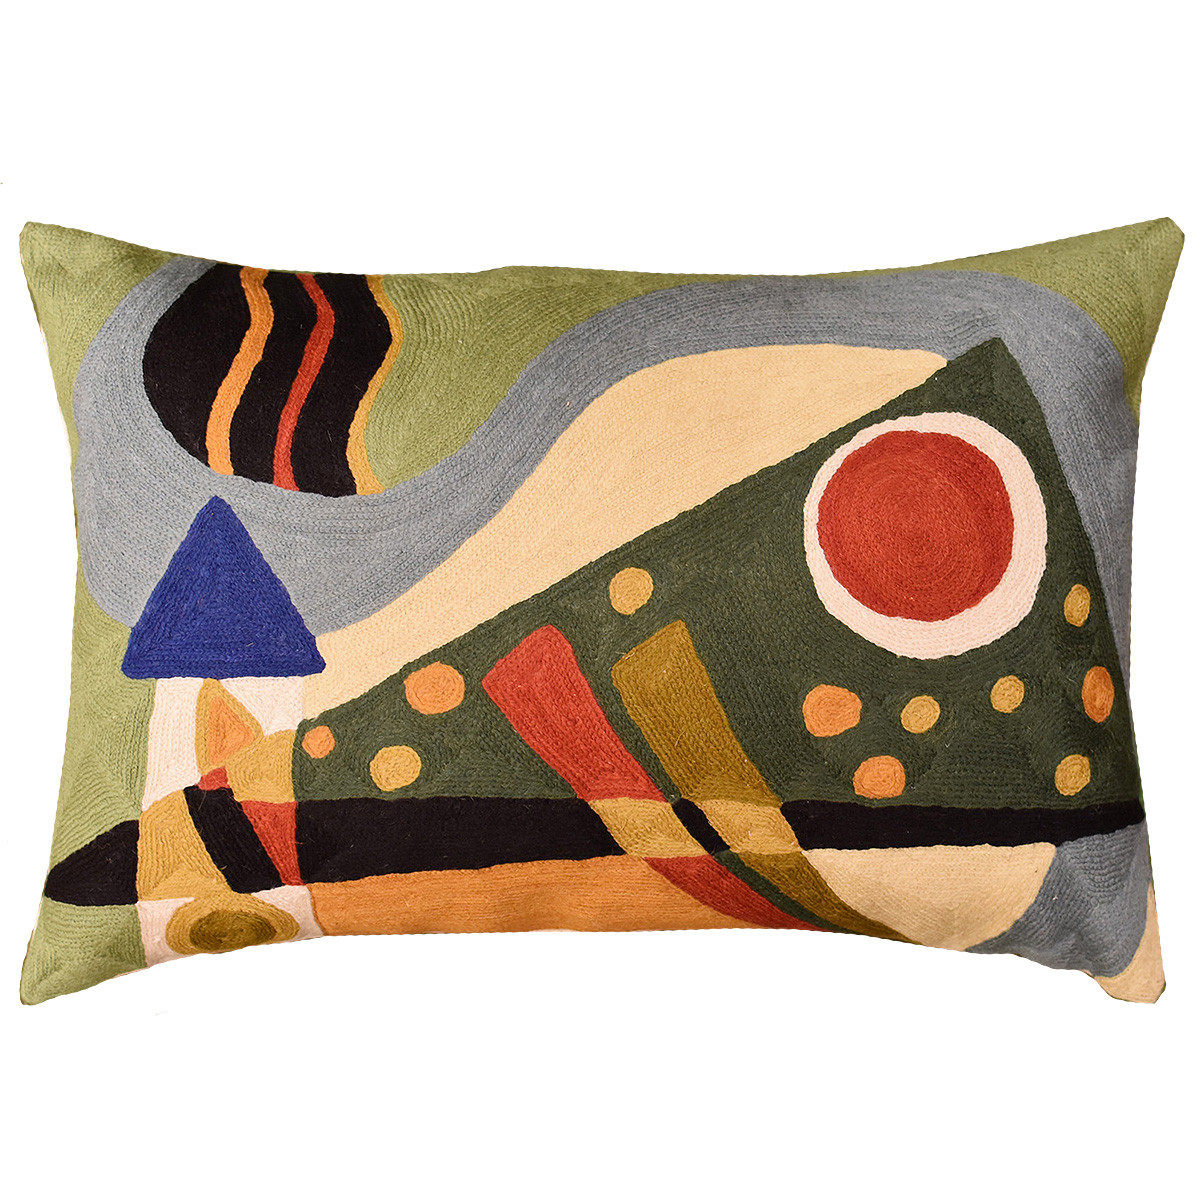 Elegant Lumbar Kandinsky Throw Pillow Position Vii Green Hand Patterned Throw Of Amazing 40 Photos Patterned Throw